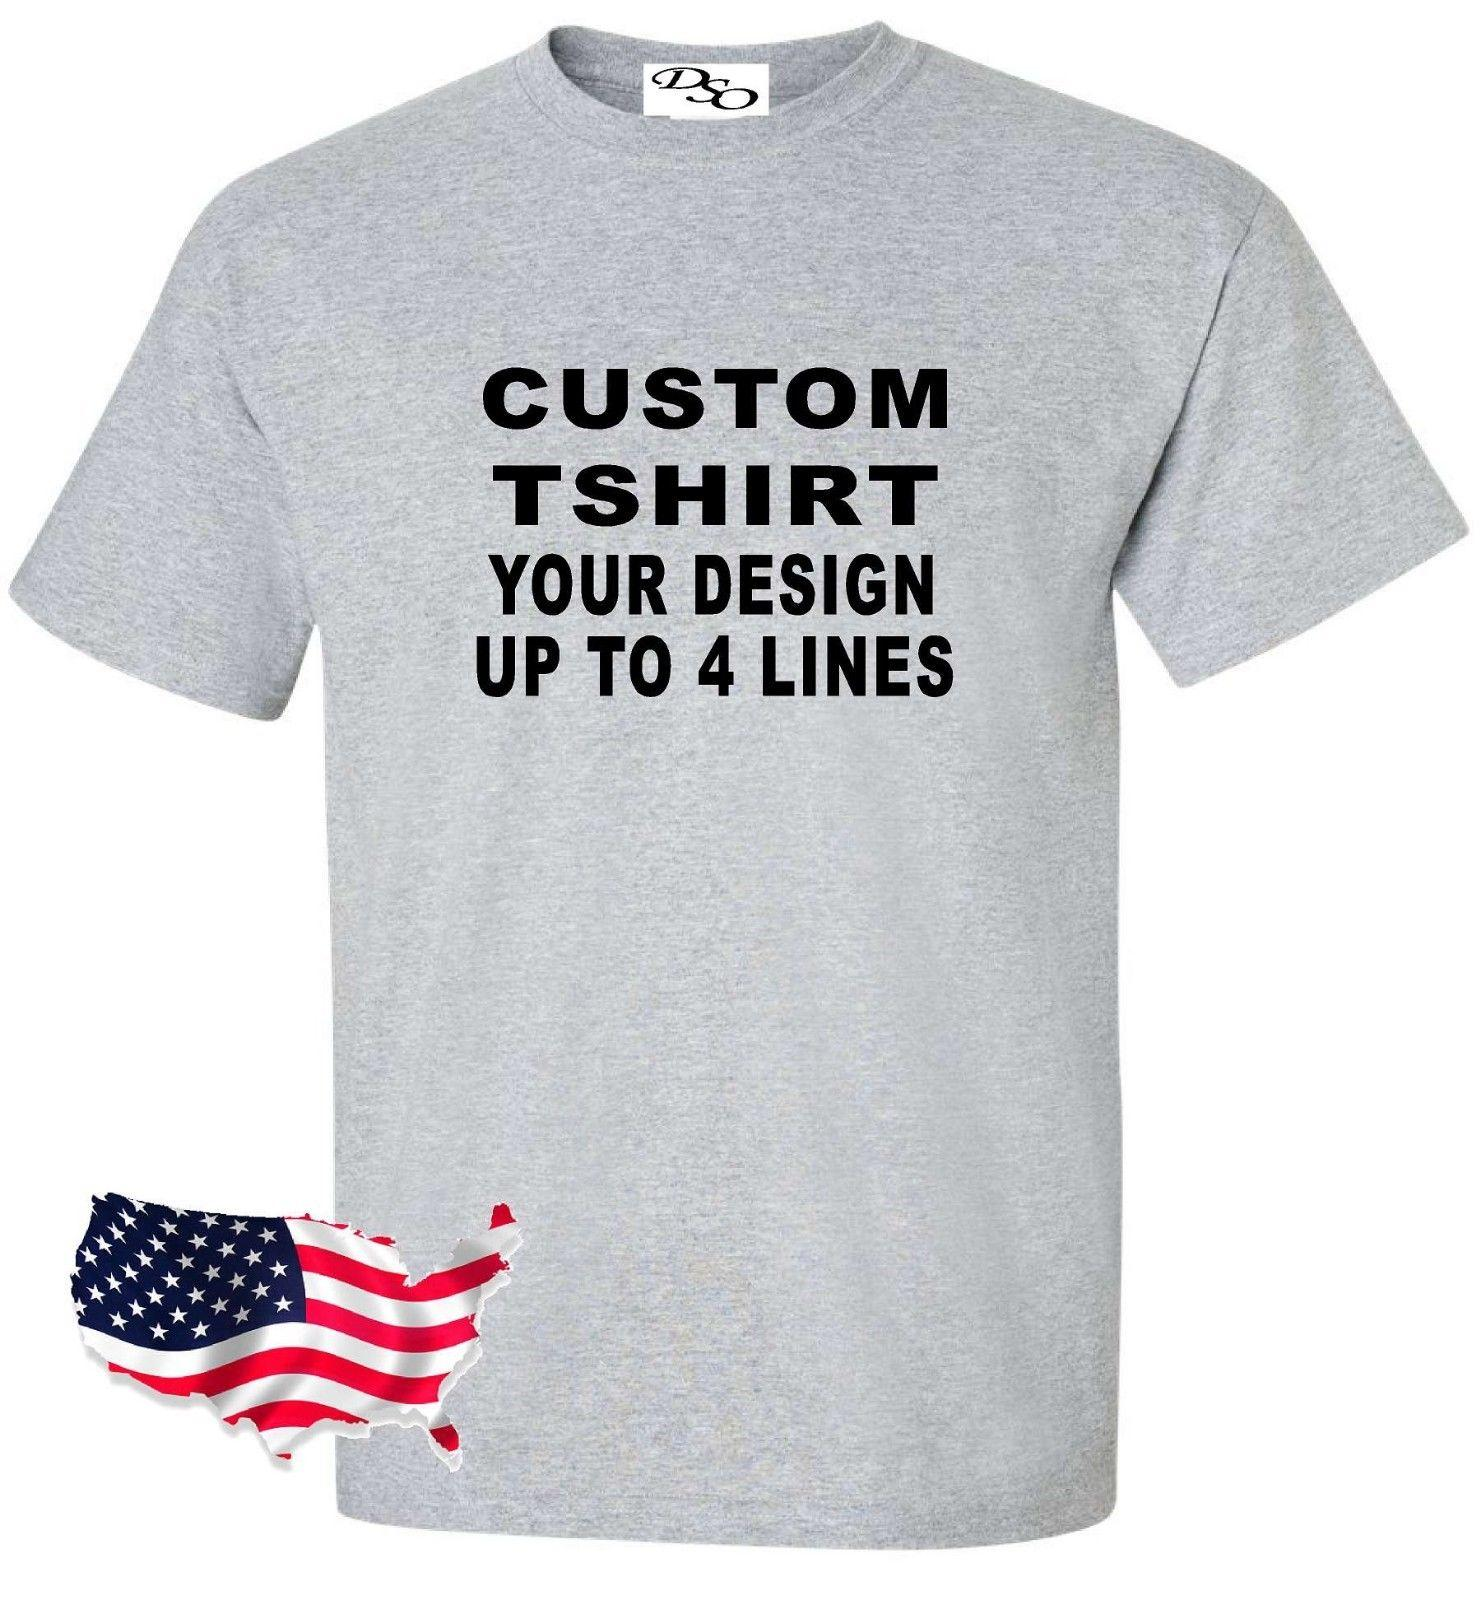 a01d604b6ac9d Custom T Shirt Your Design Your Text Here 1300  16 Shirt Colors SM 6X Funny  Unisex Casual Tshirt Top Tshits Tee S From Teeslocker